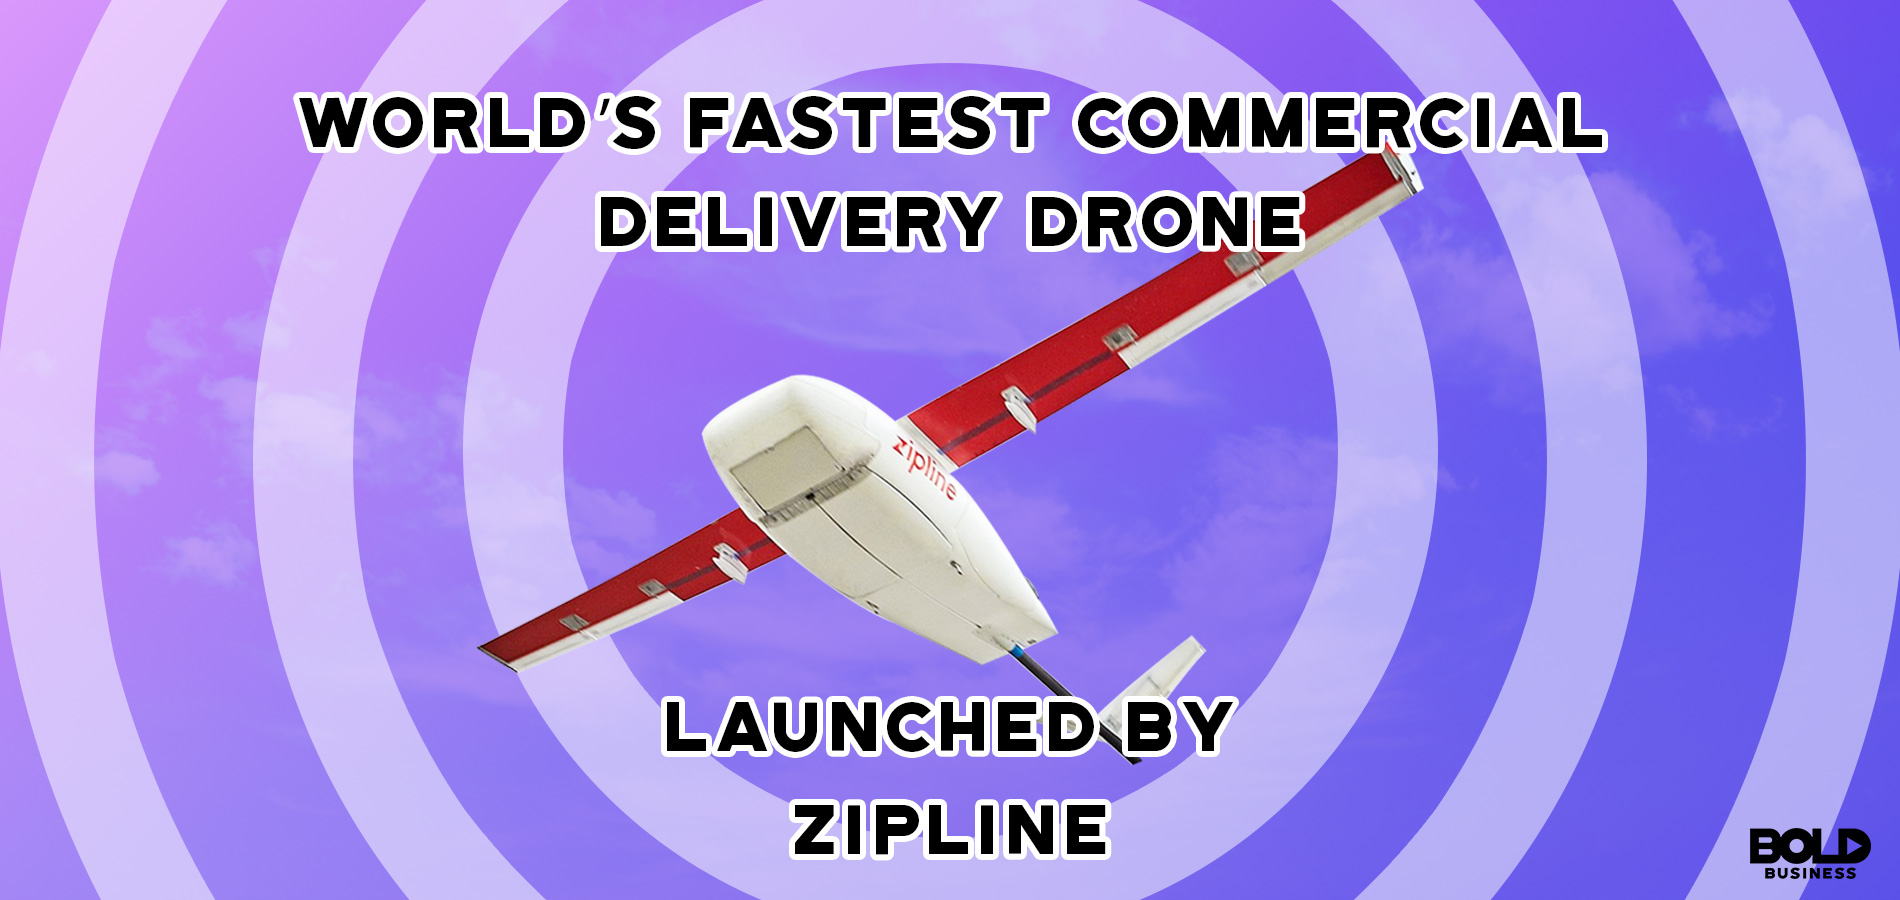 World's Fastest Commercial Delivery Drone